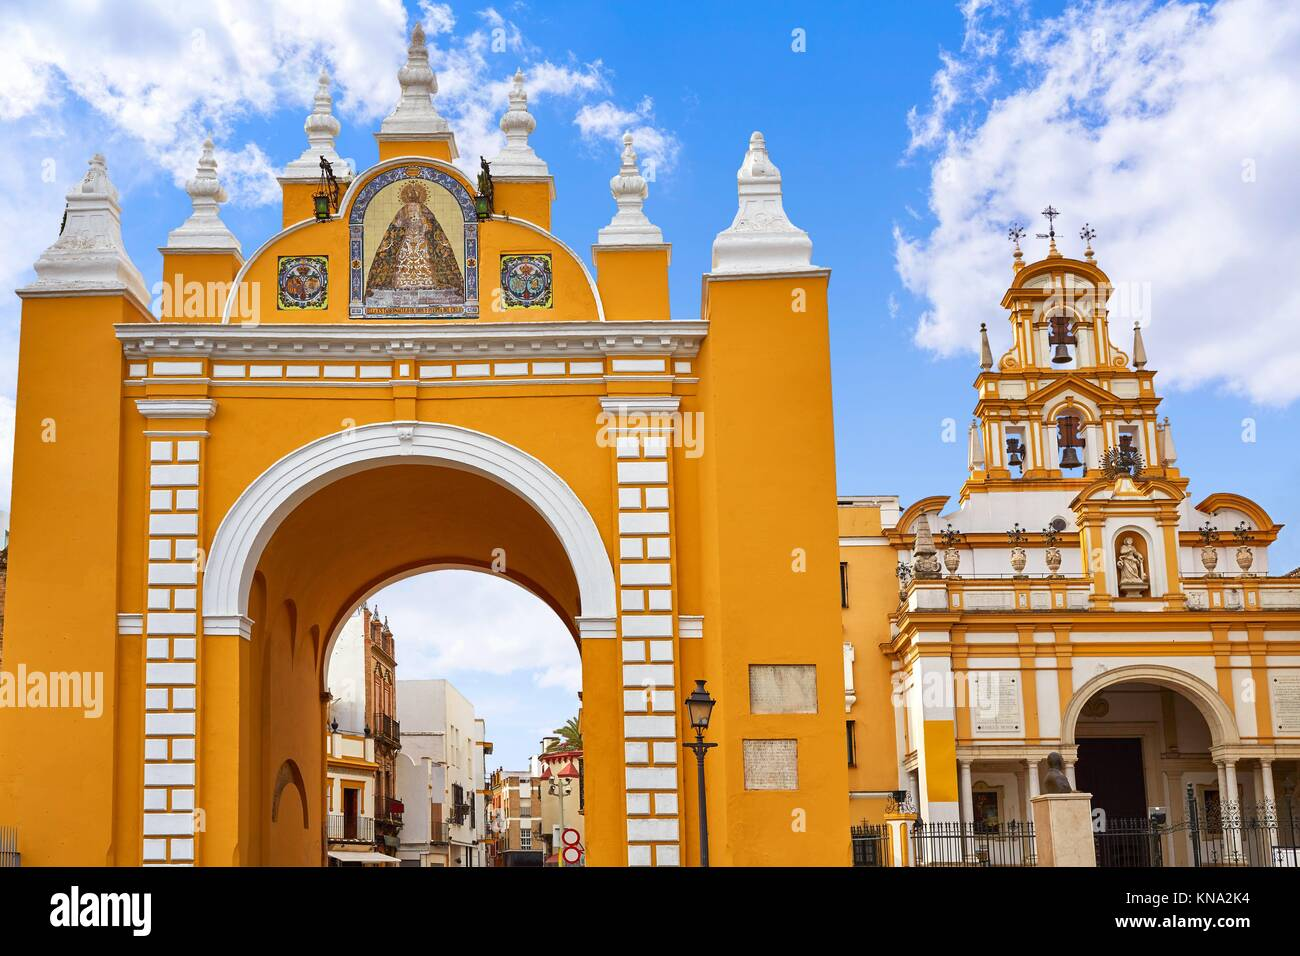 macarena door arch in seville spain. - Stock Image